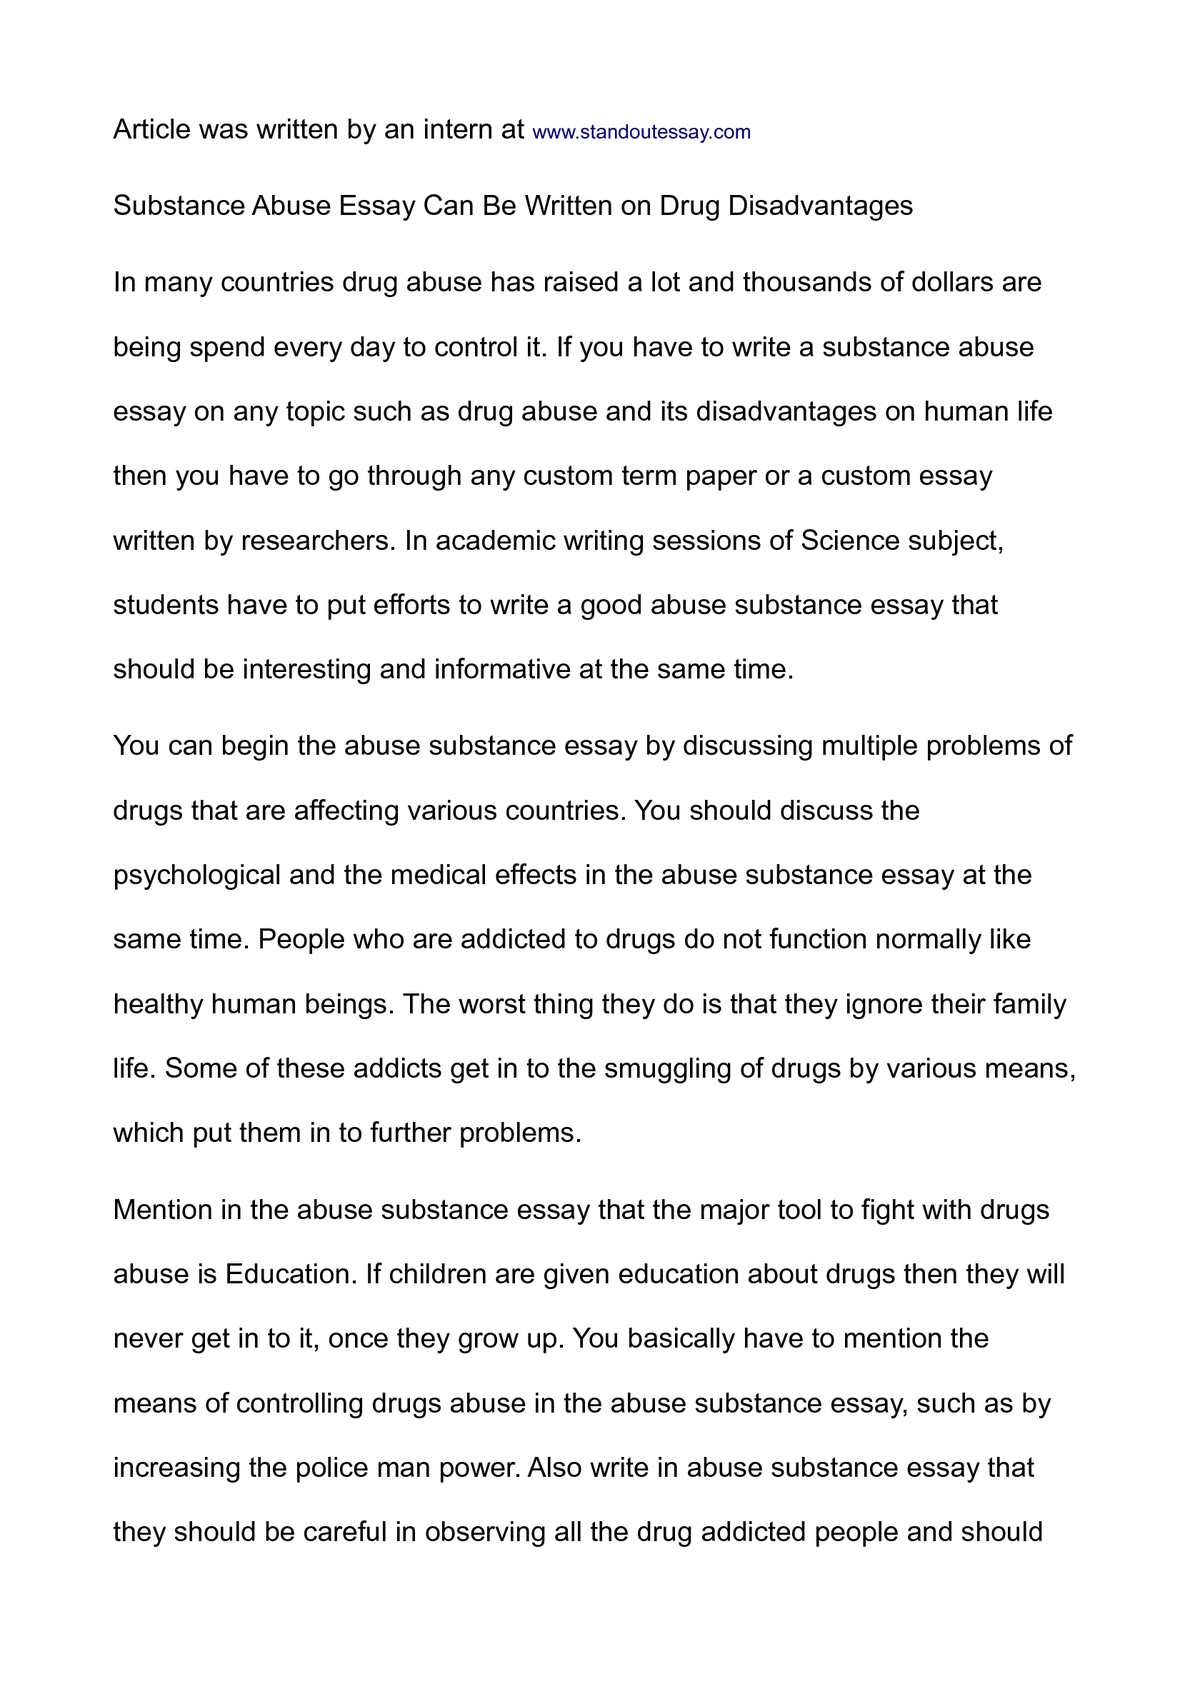 rough draft of an essay